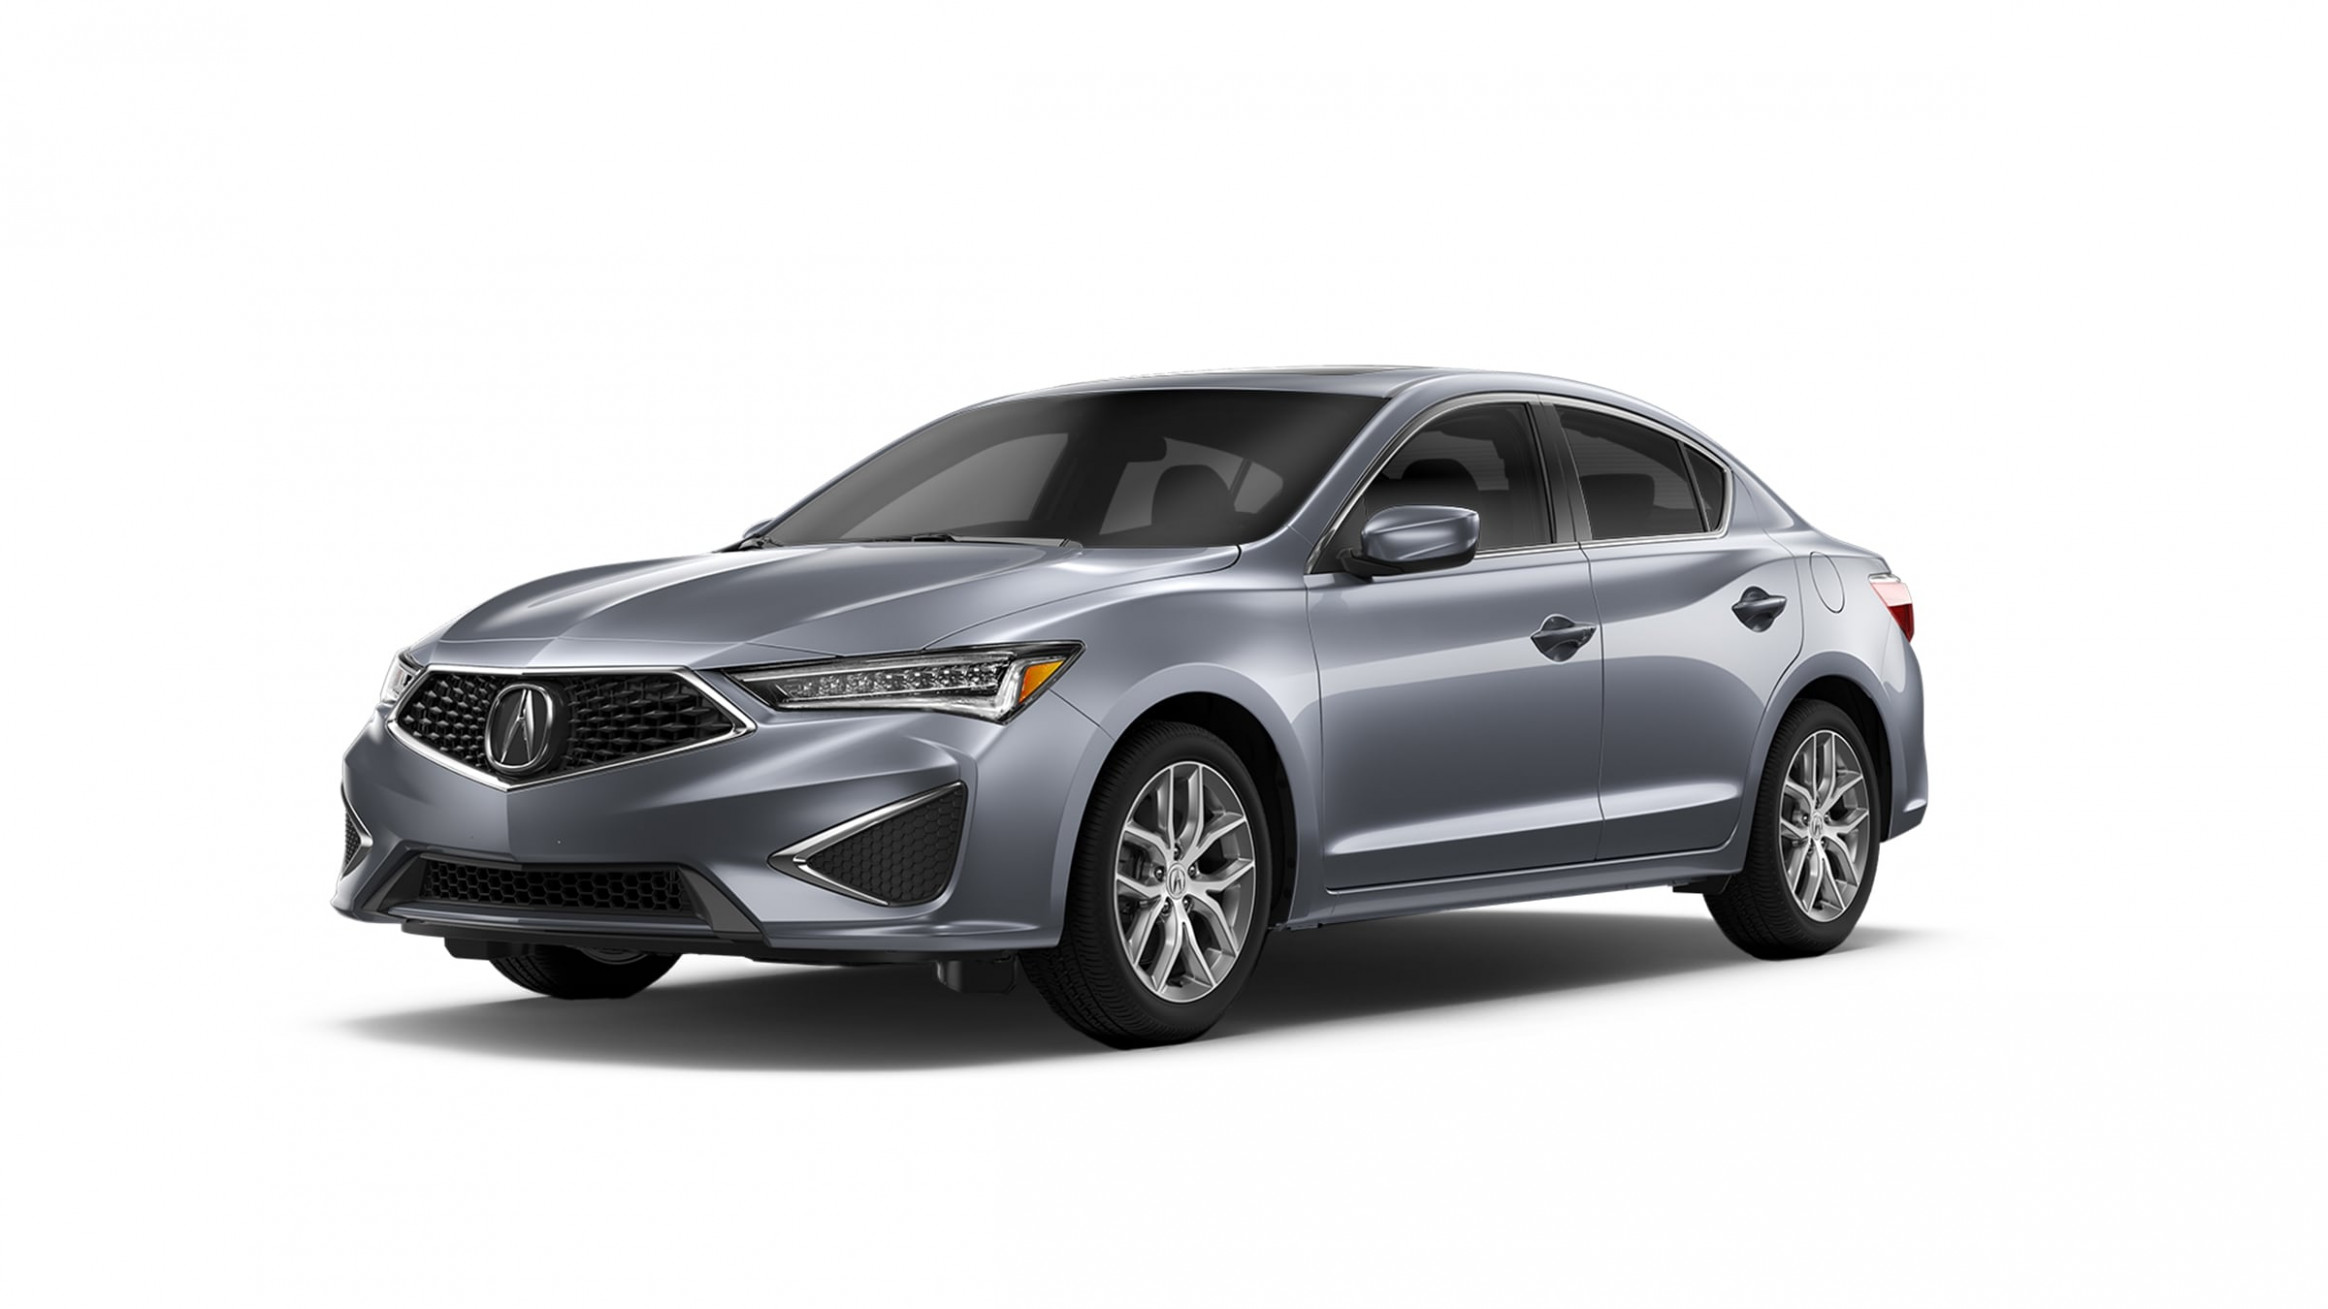 Acura Lease Offers & Deals   All Vehicles   Acura